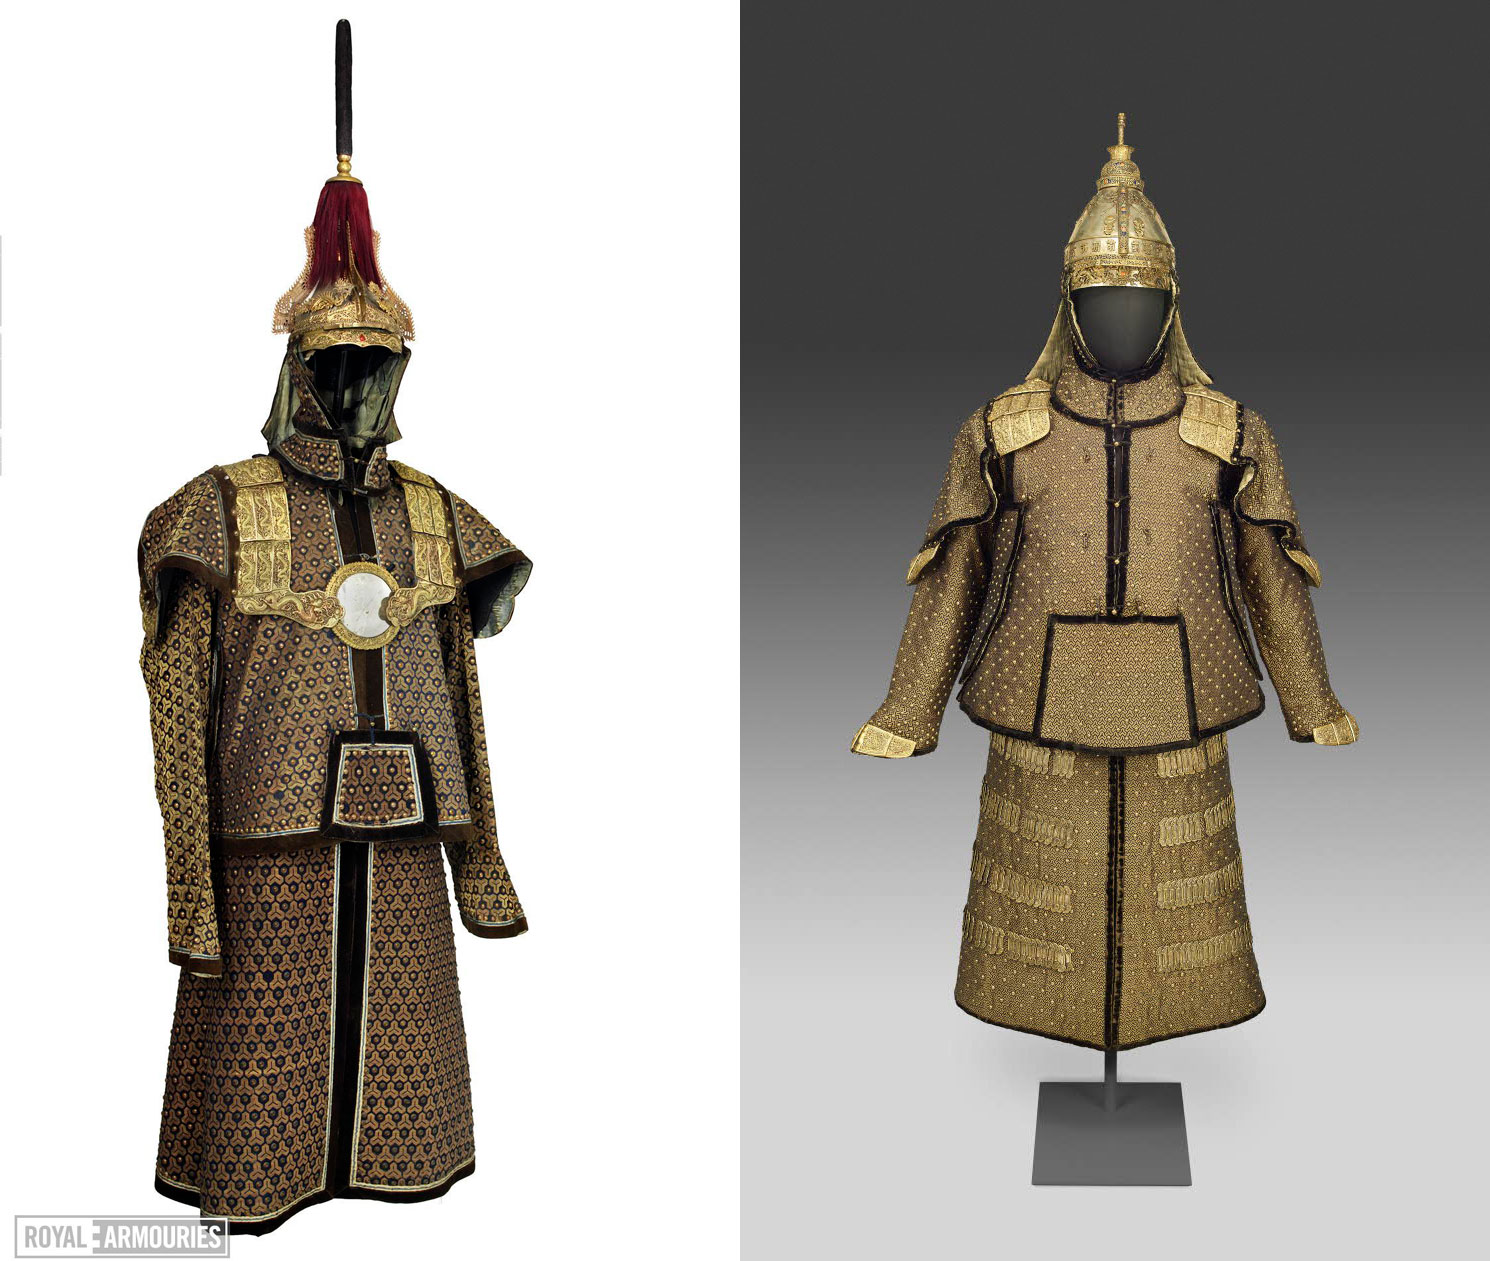 Examples of Qing dynasty armour at the Royal Armouries (left, image (c) Royal Armouries ) and the British Museum (right, image CC BY-NC-SA 4.0).